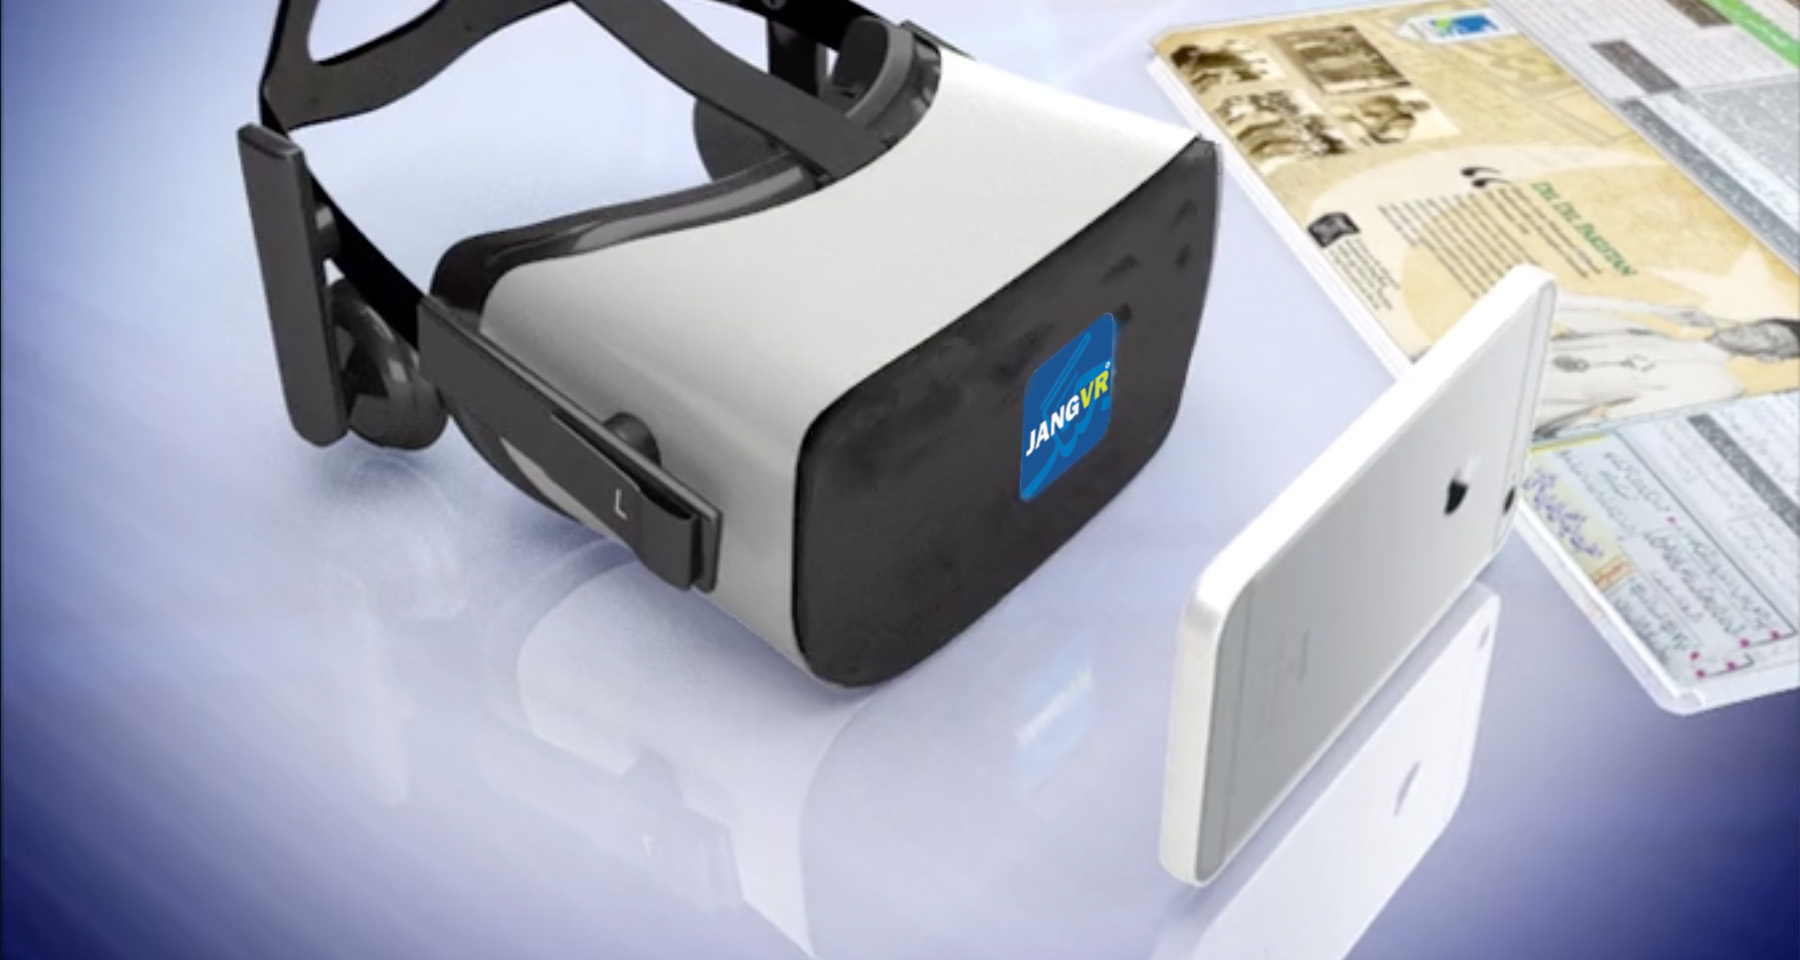 Jang Media VR app combines print, digital history